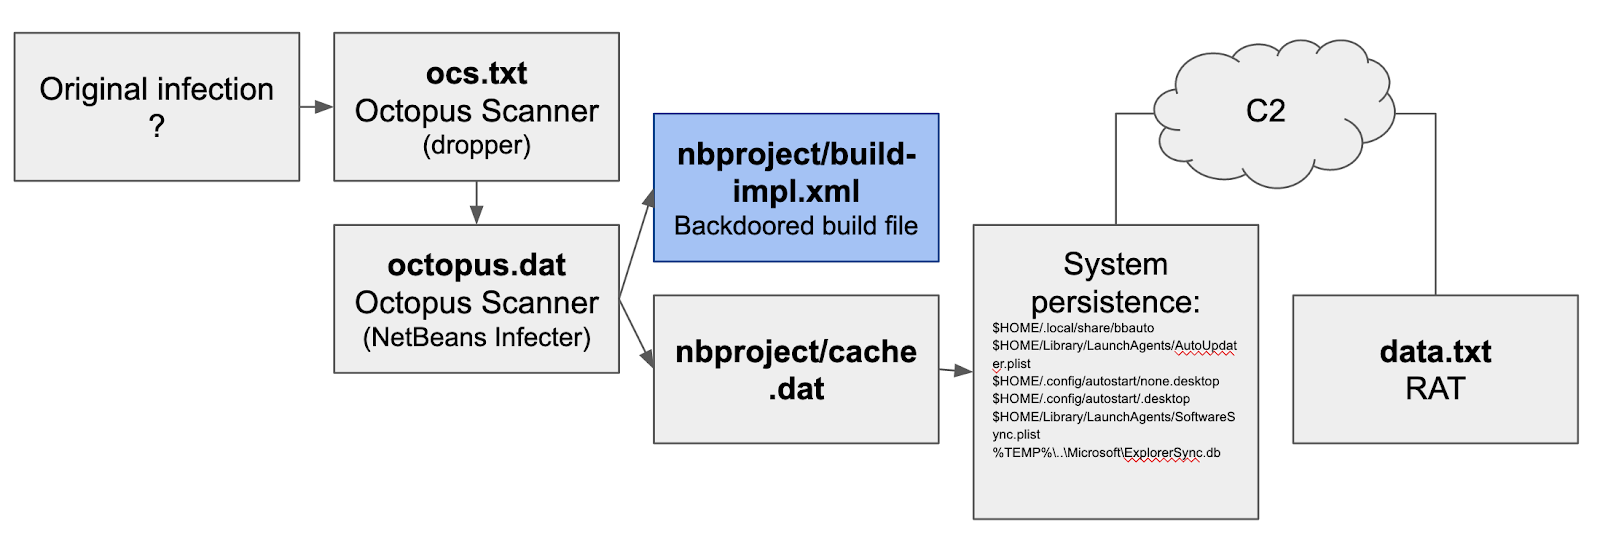 Figure 4: Diagram of the earliest version of the malware